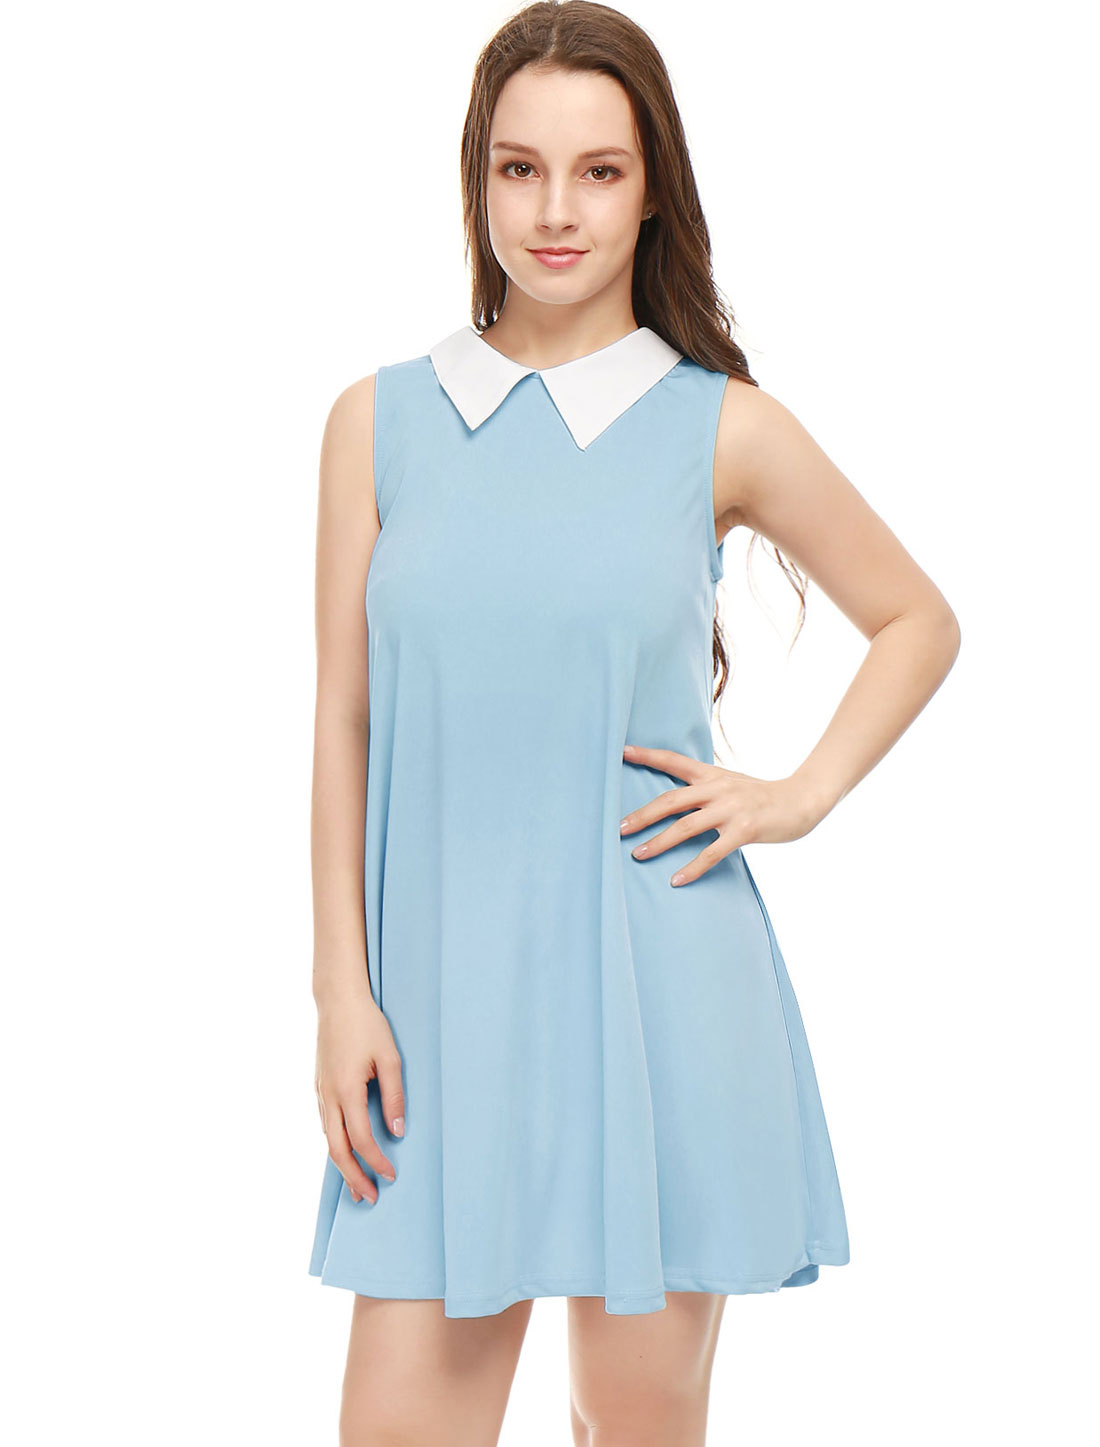 Women Contrast Color Peter Pan Collar Sleeveless Swing Dress Blue S